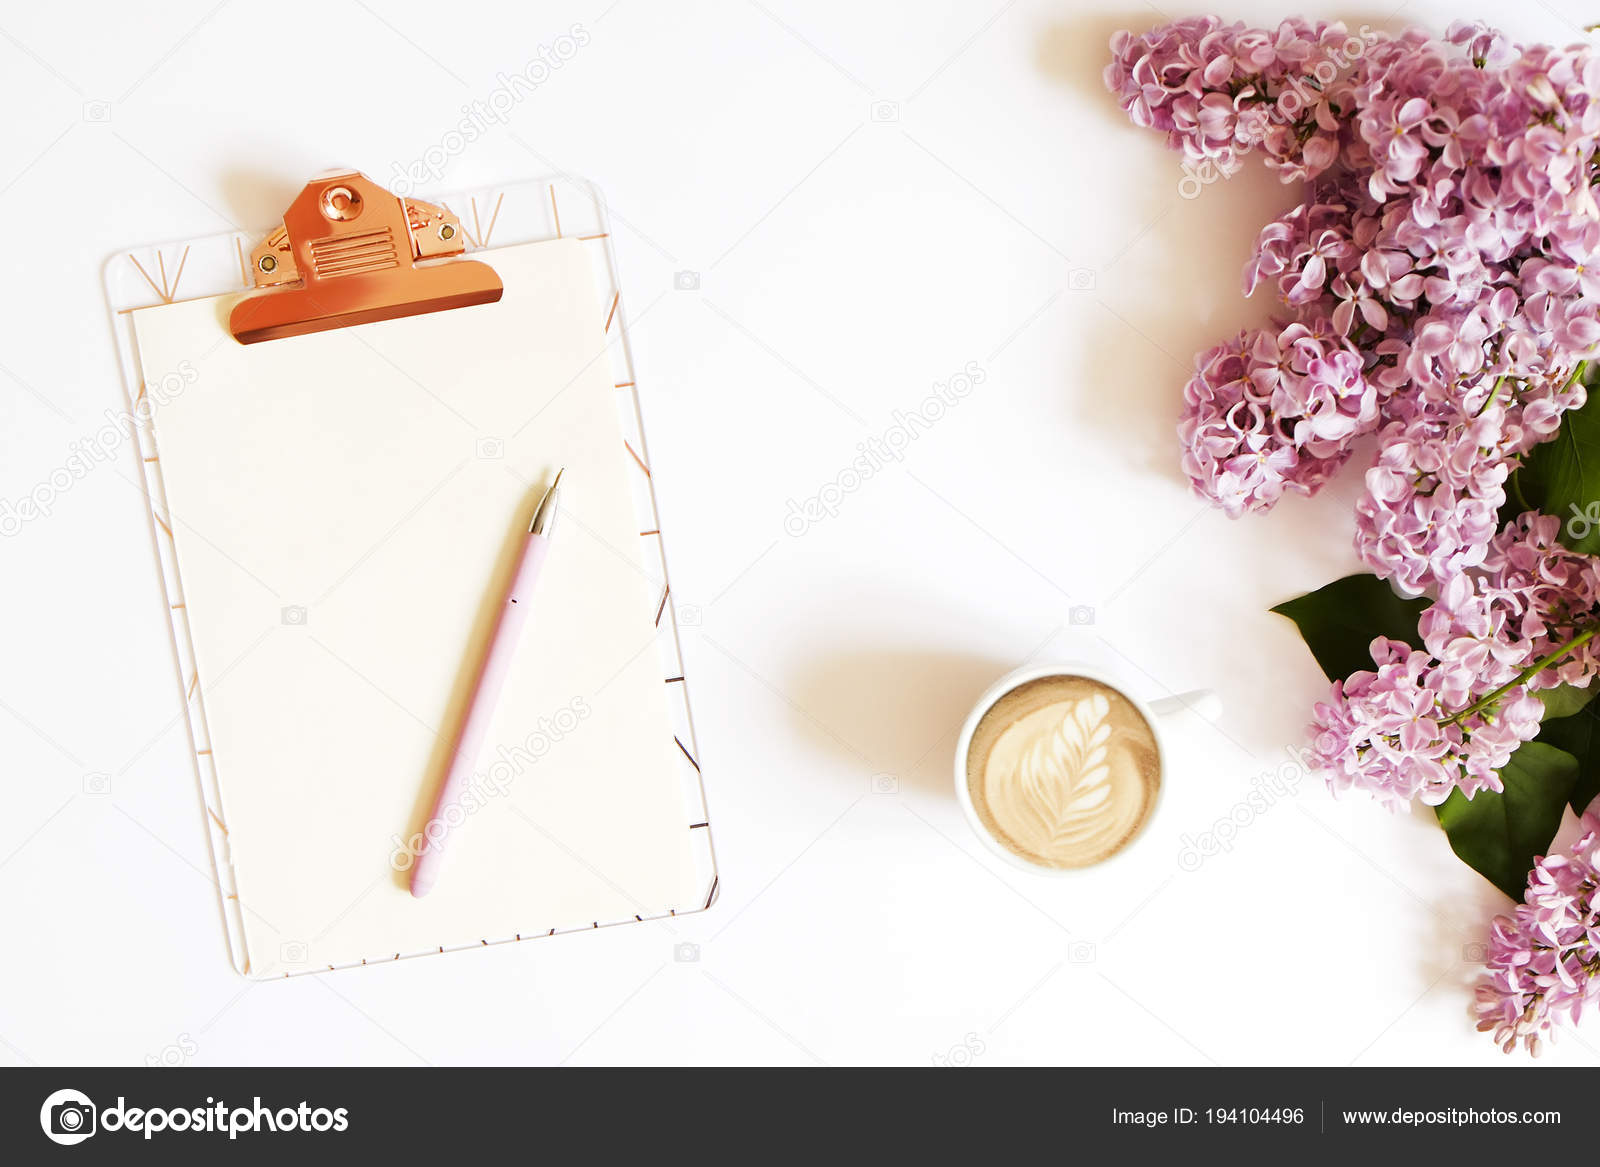 ... Cup Of Coffee, Pink Pen U0026 Lilac Flowers In Minimal Arrangement On White  Table Top Background. Feminine Flat Lay Composition W/ Purple Bouquet.